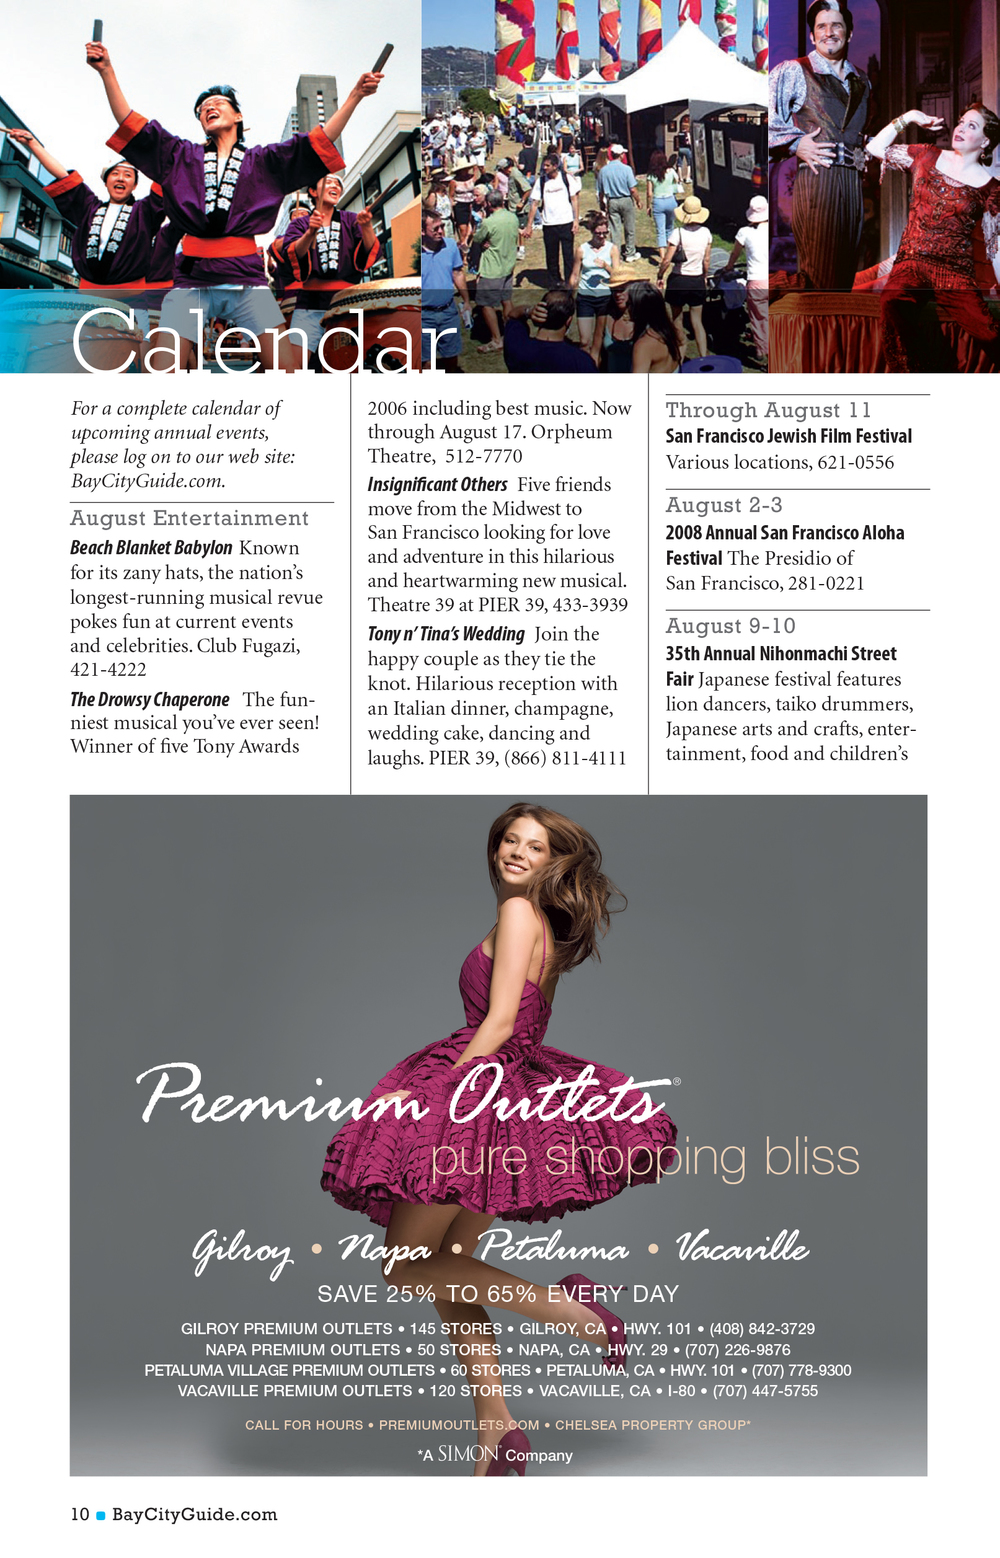 Bay City Guide magazine - Calendar